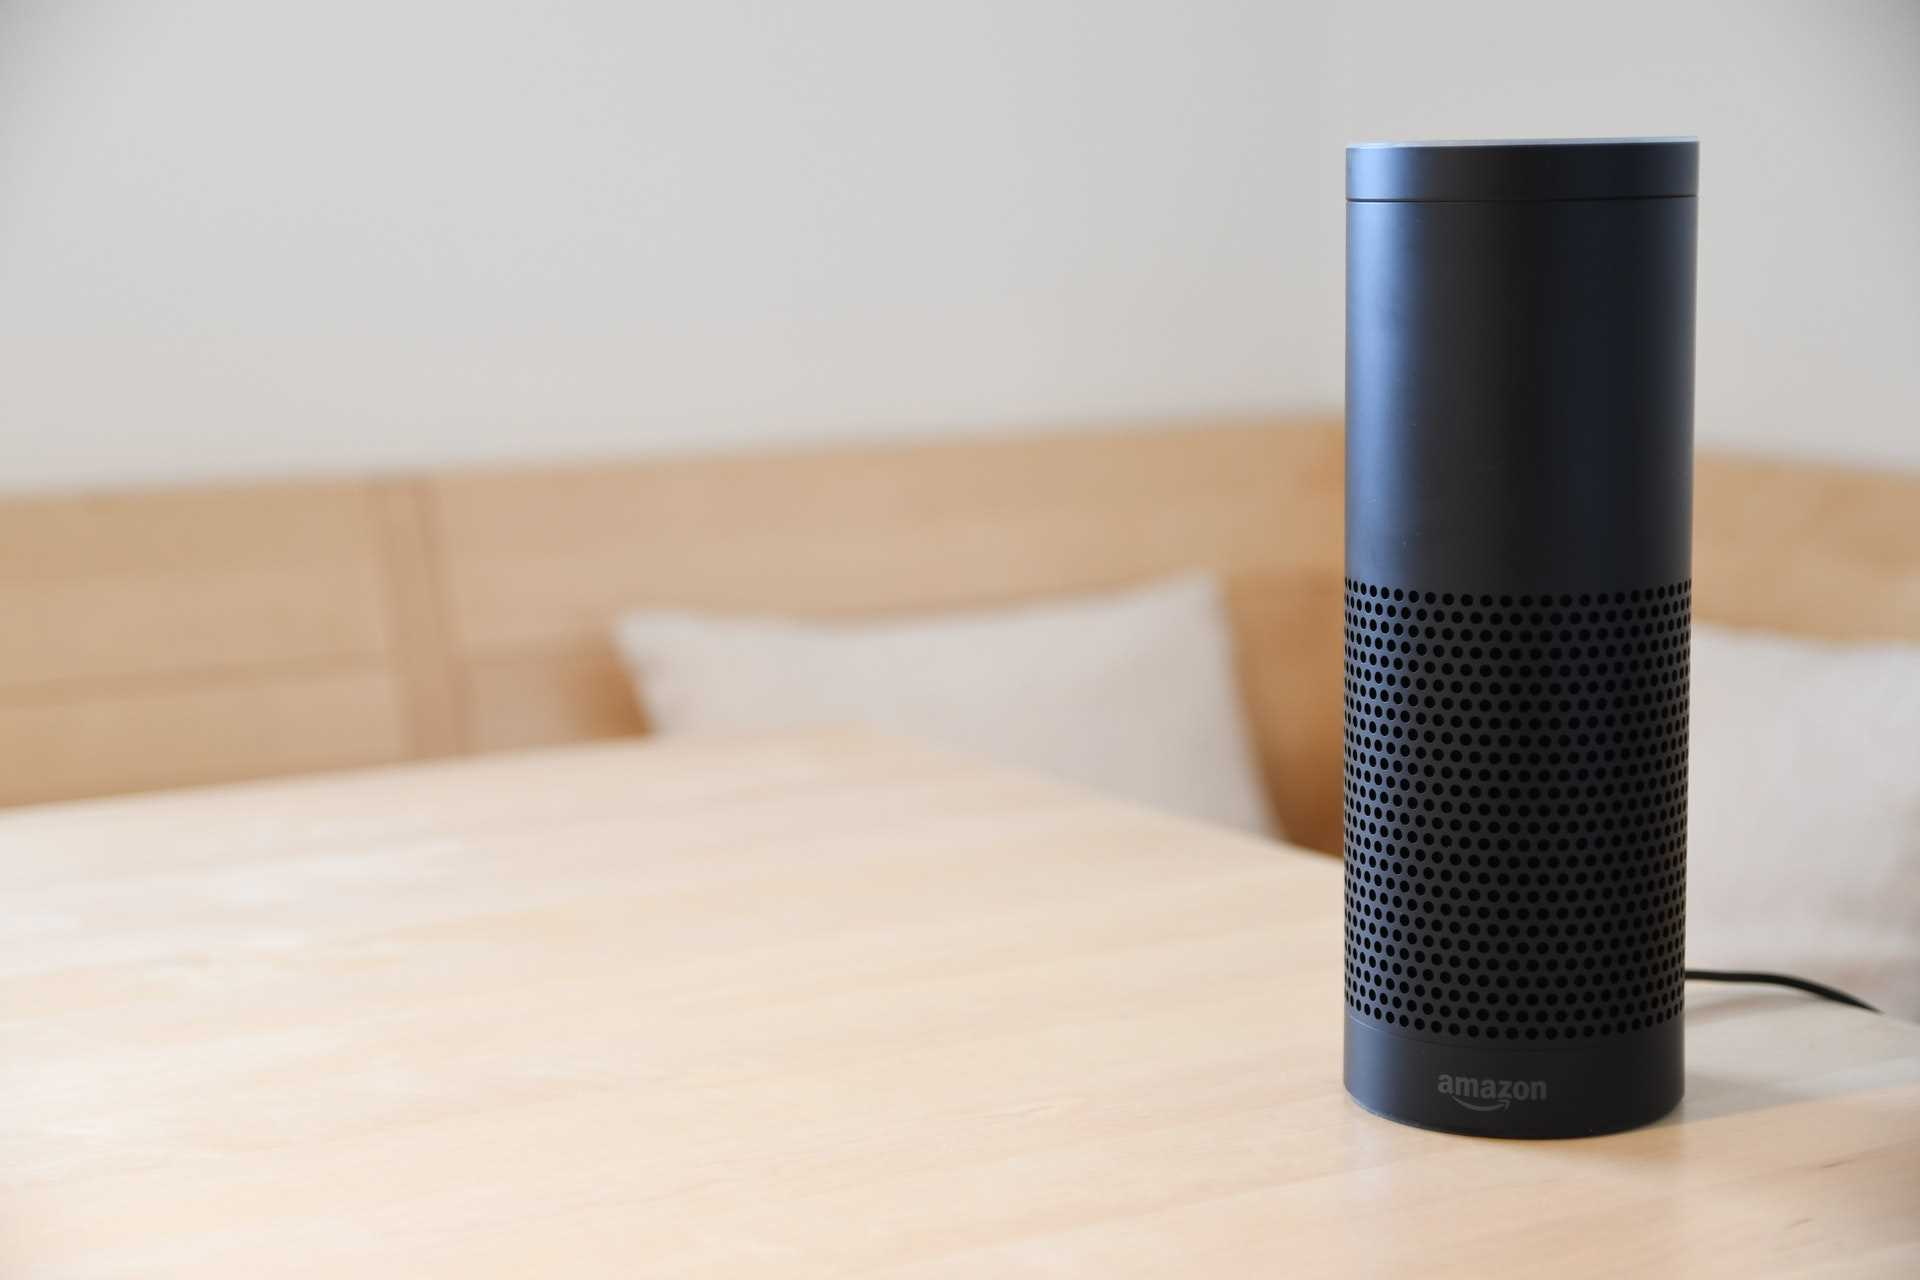 Be a 21st Century Shopper and Use Your Amazon Echo for Holiday Shopping